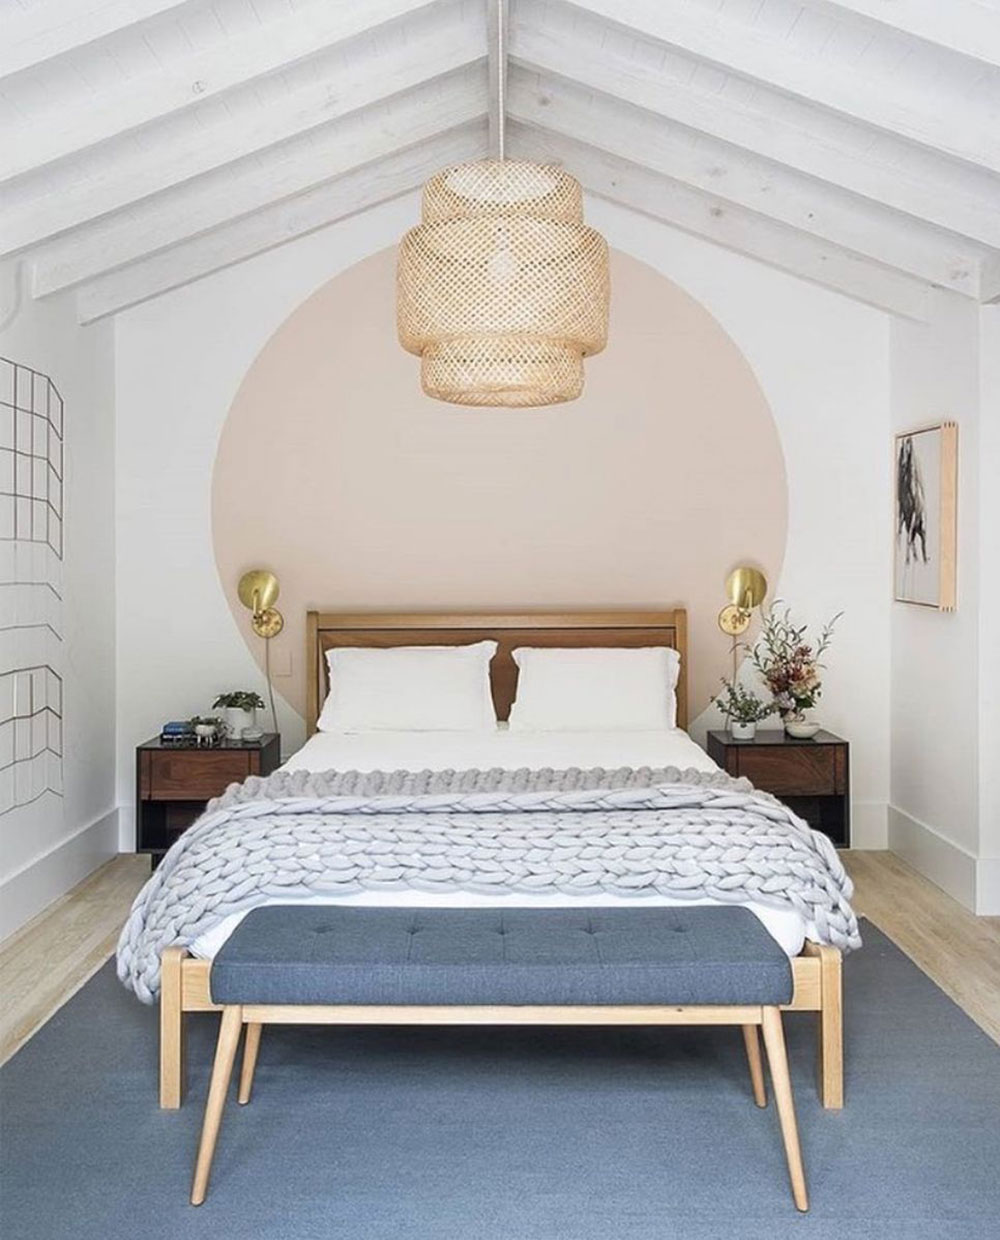 Focus on top 5 ideas for decorating your small bedroom